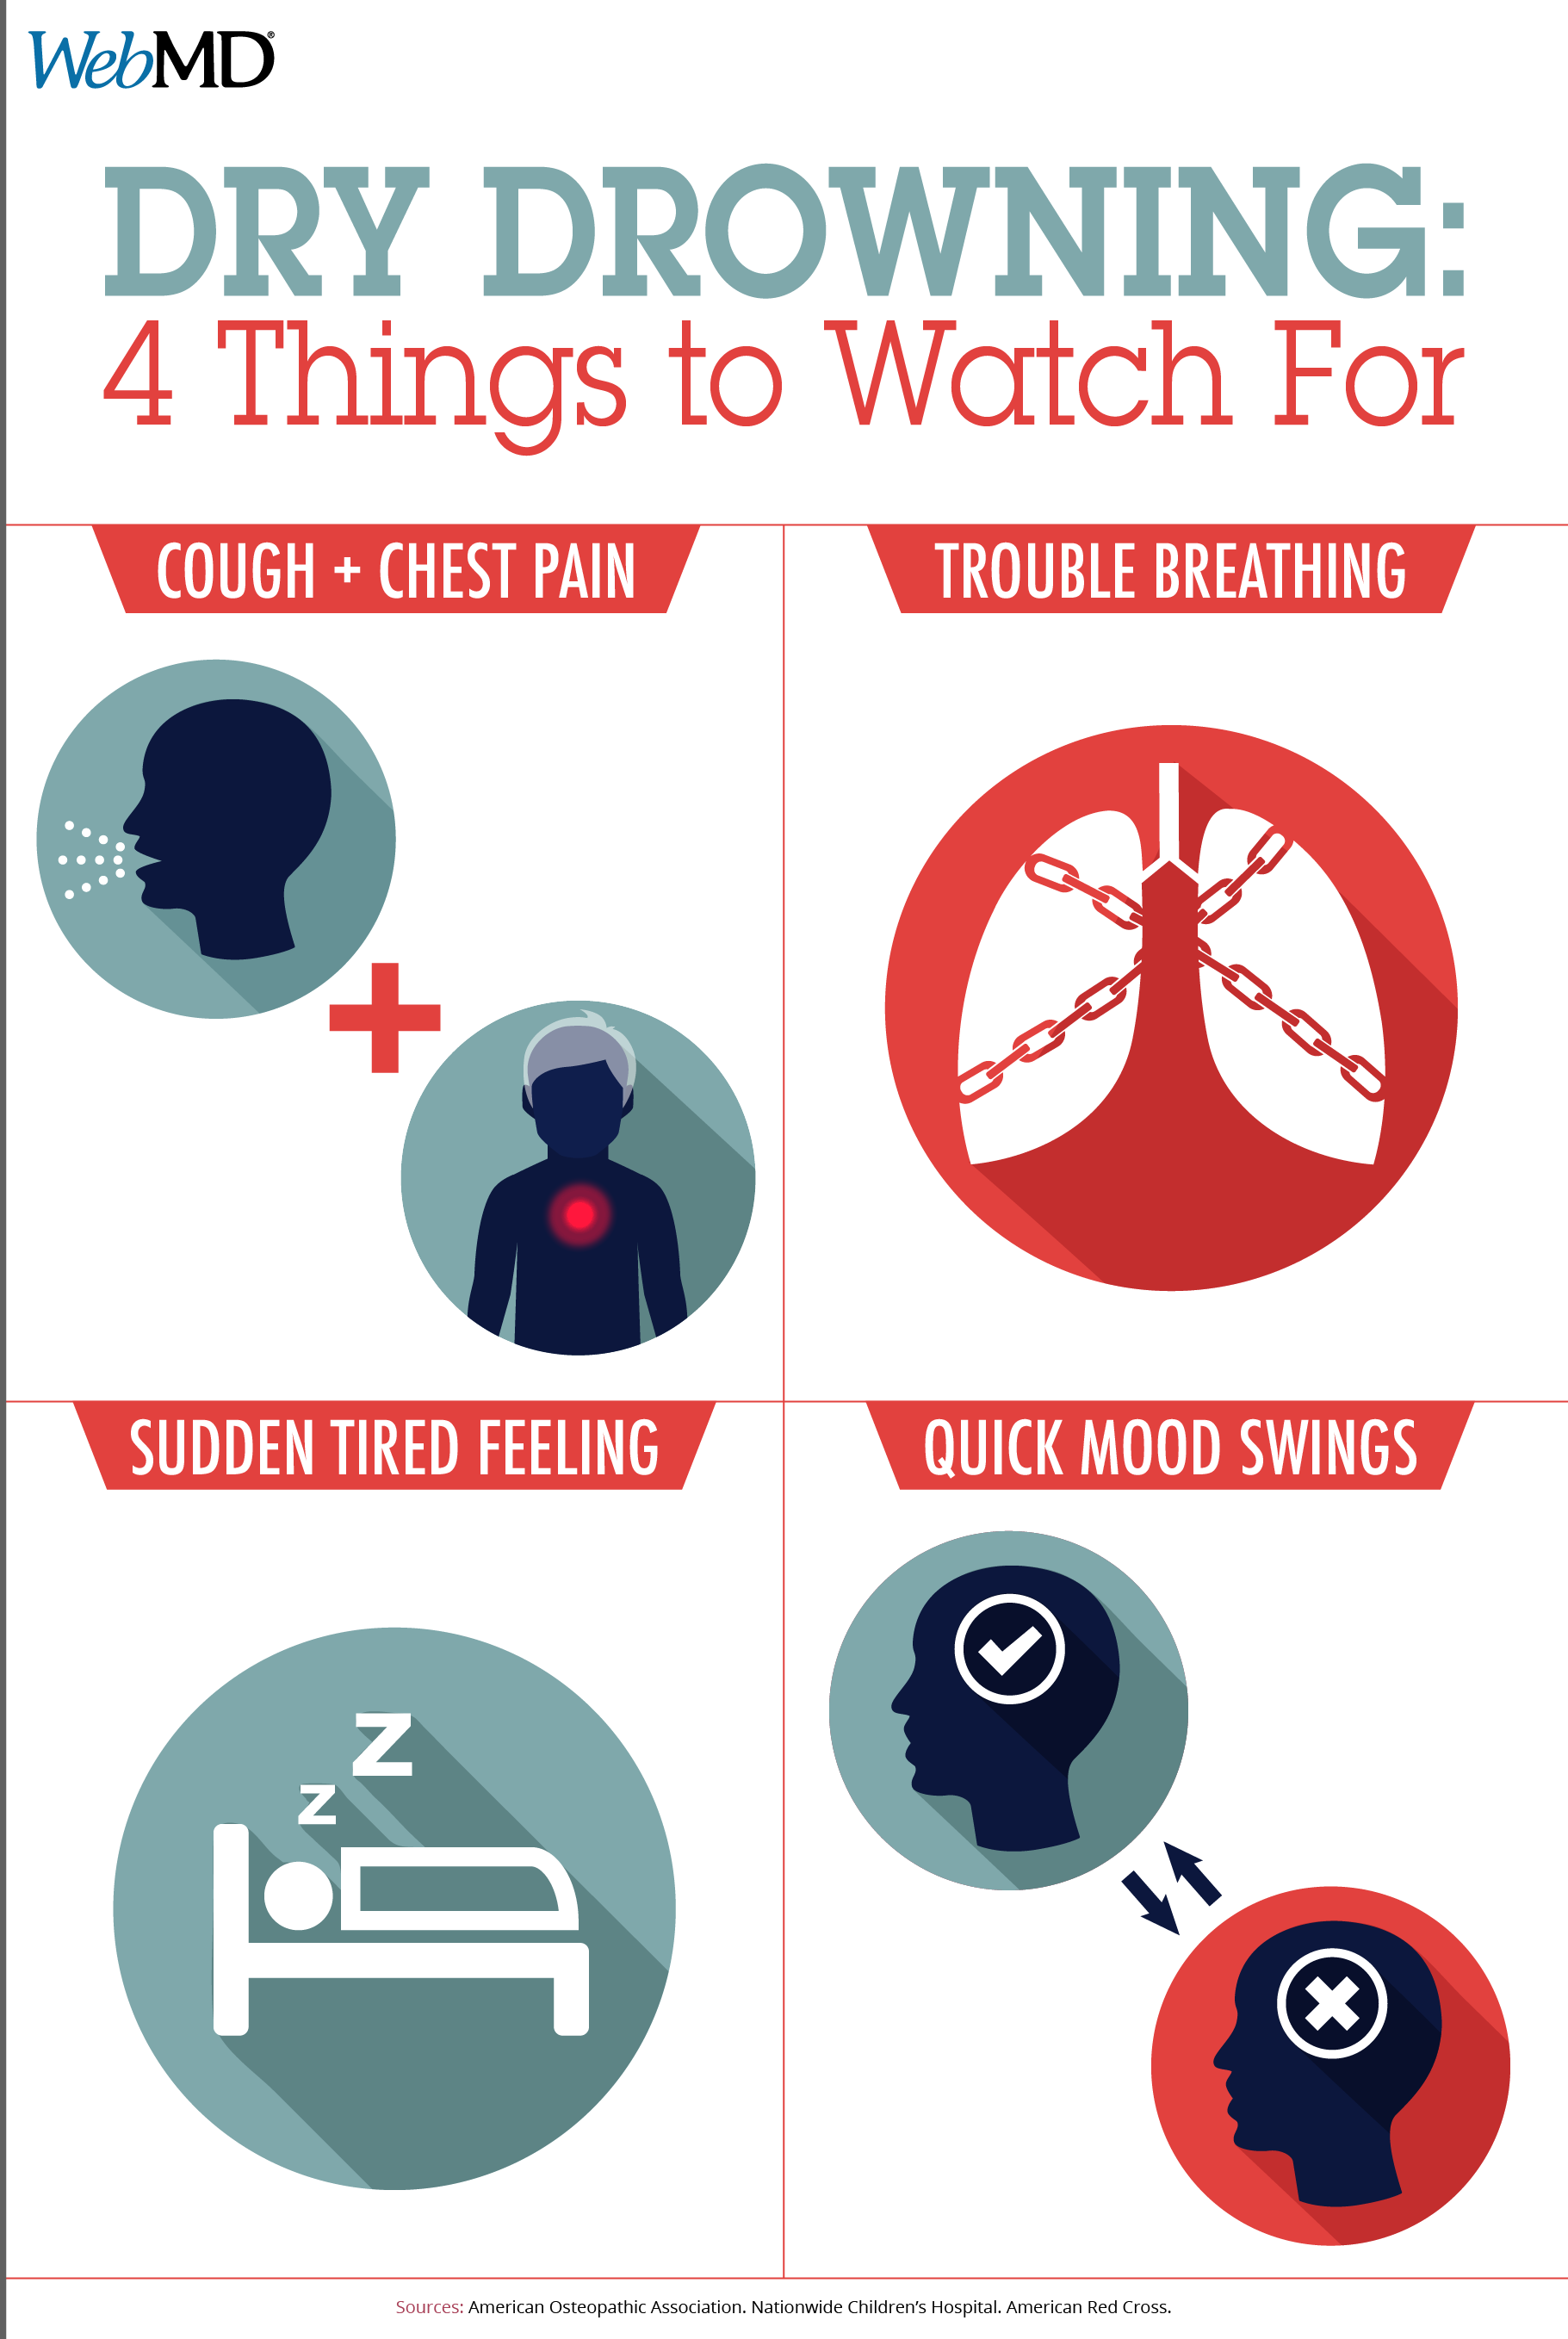 Know the Signs of 'Dry Drowning' and 'Secondary Drowning